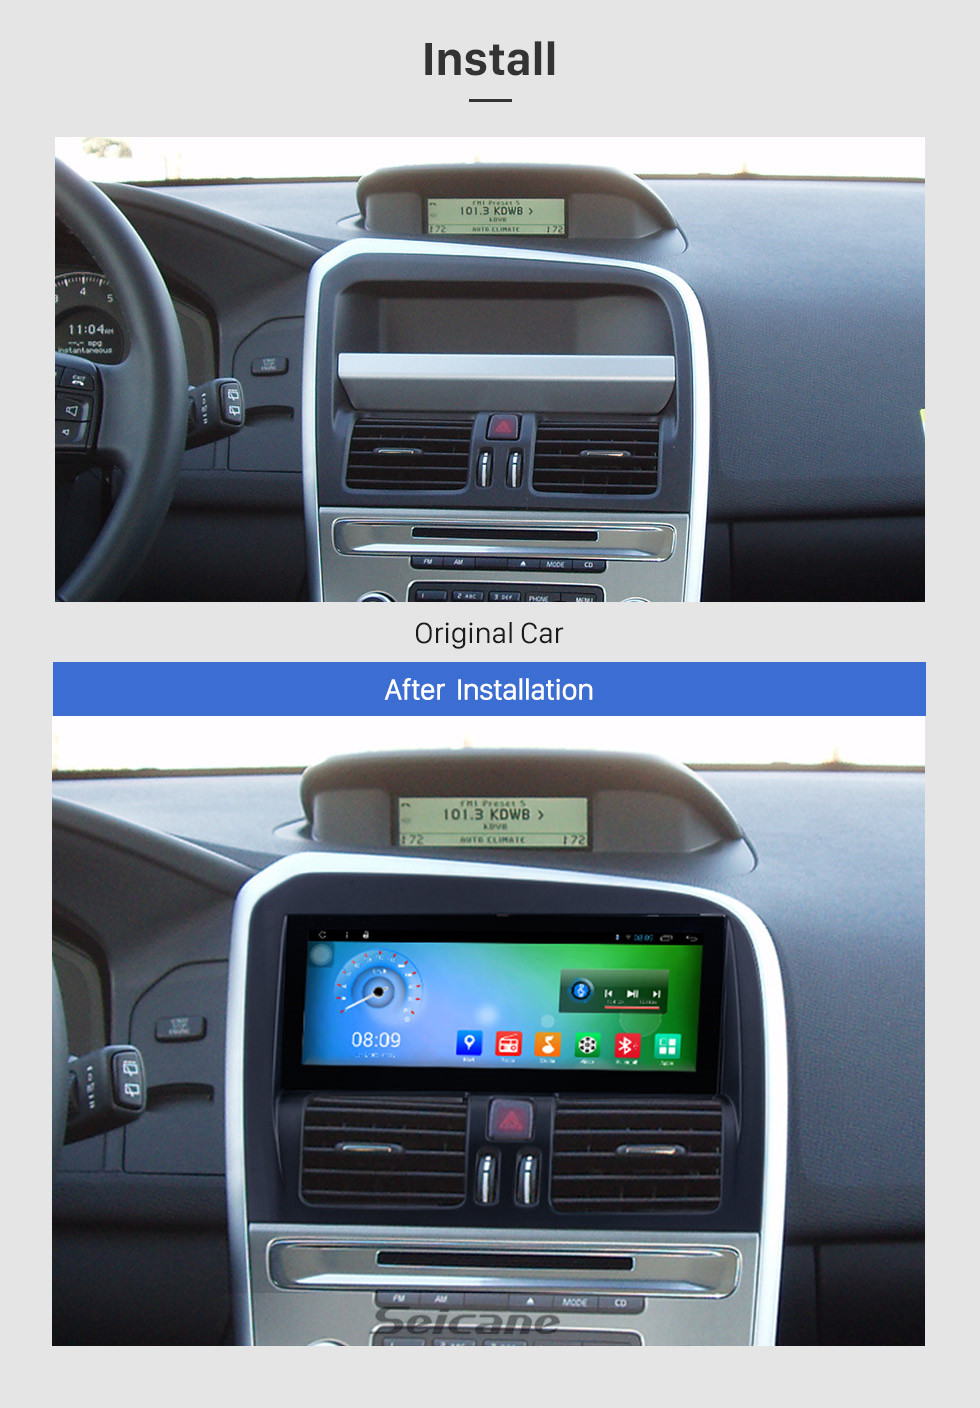 Seicane Android 7.1 2009-2017 Volvo XC60 CD Radio GPS Navigation Stereo Bluetooth Music DVD Player 3G WiFi TV Tuner DVR Steering Wheel Control USB DVR Backup Camera